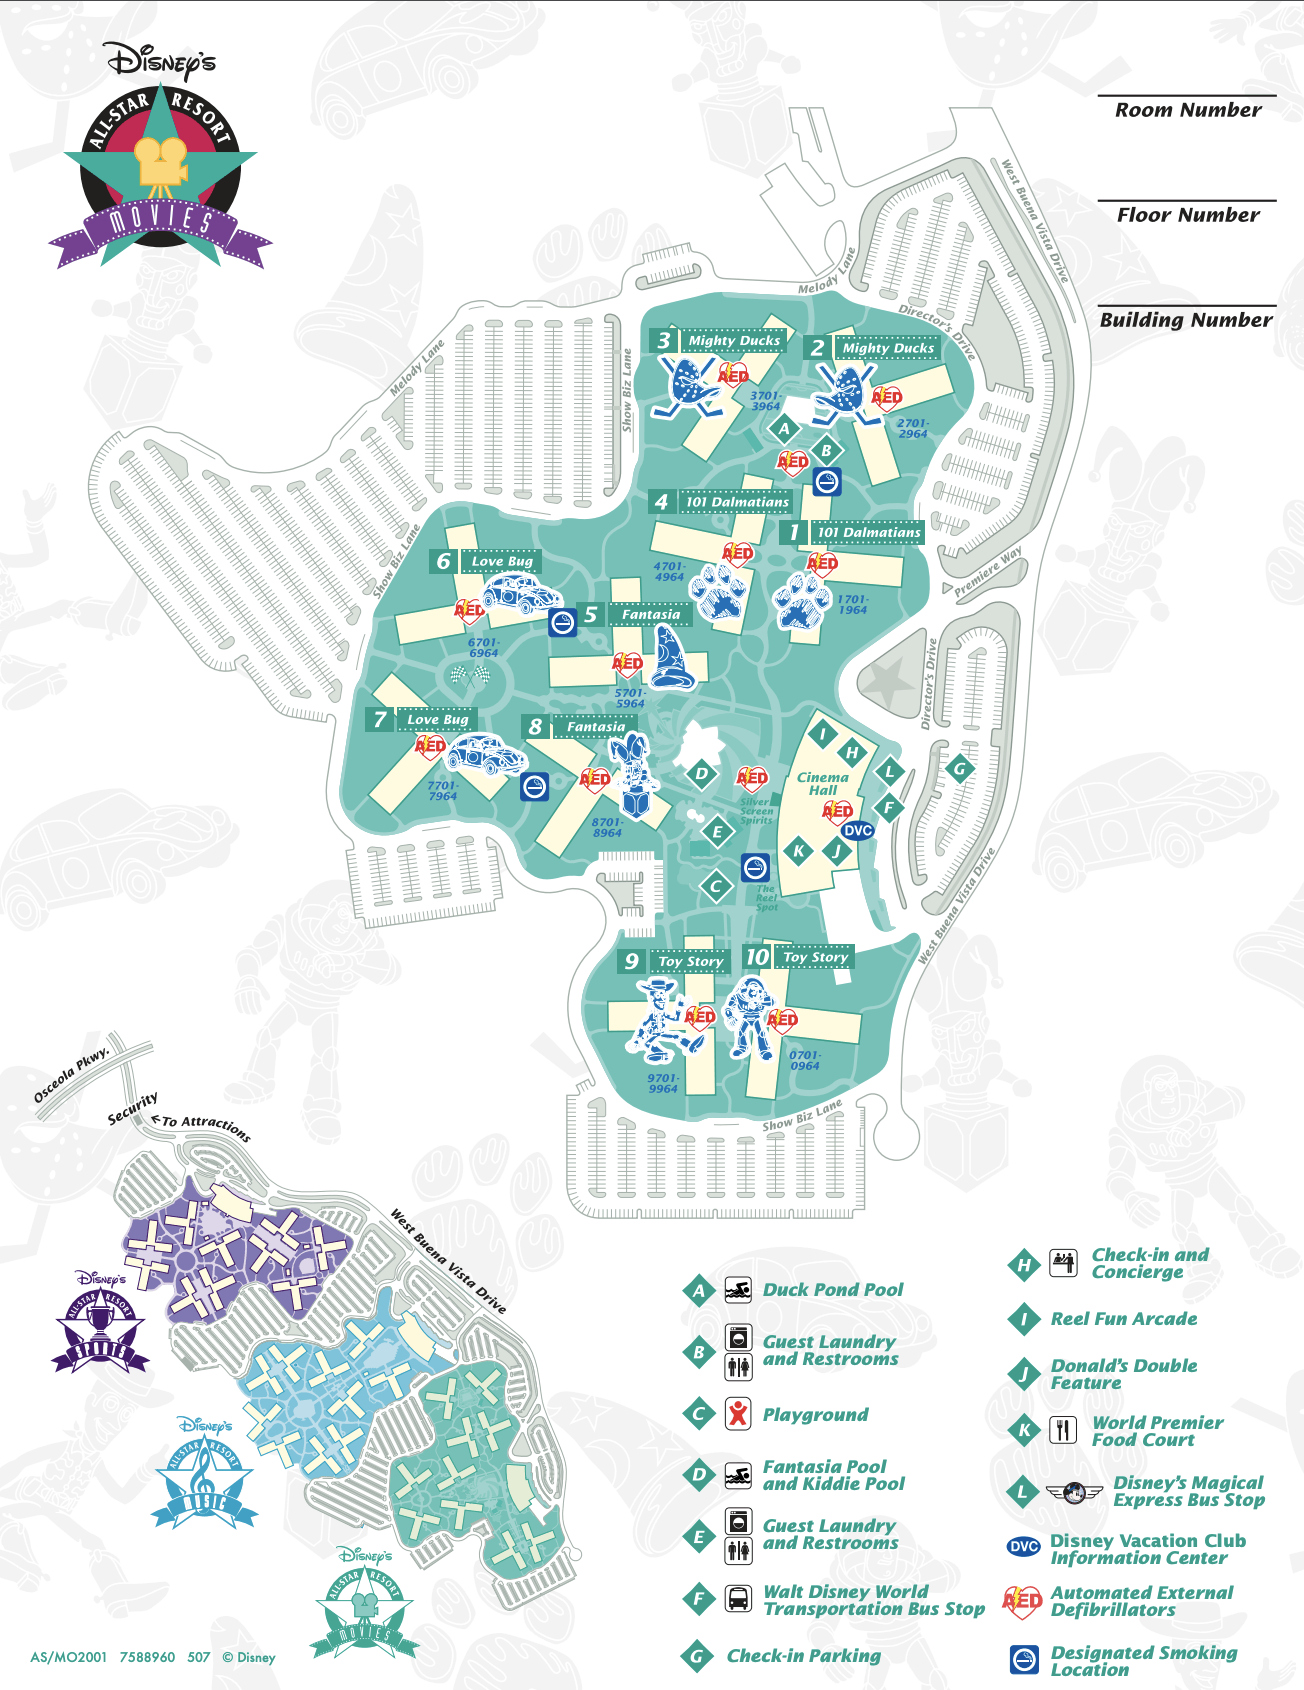 All Star Resort Movies Map